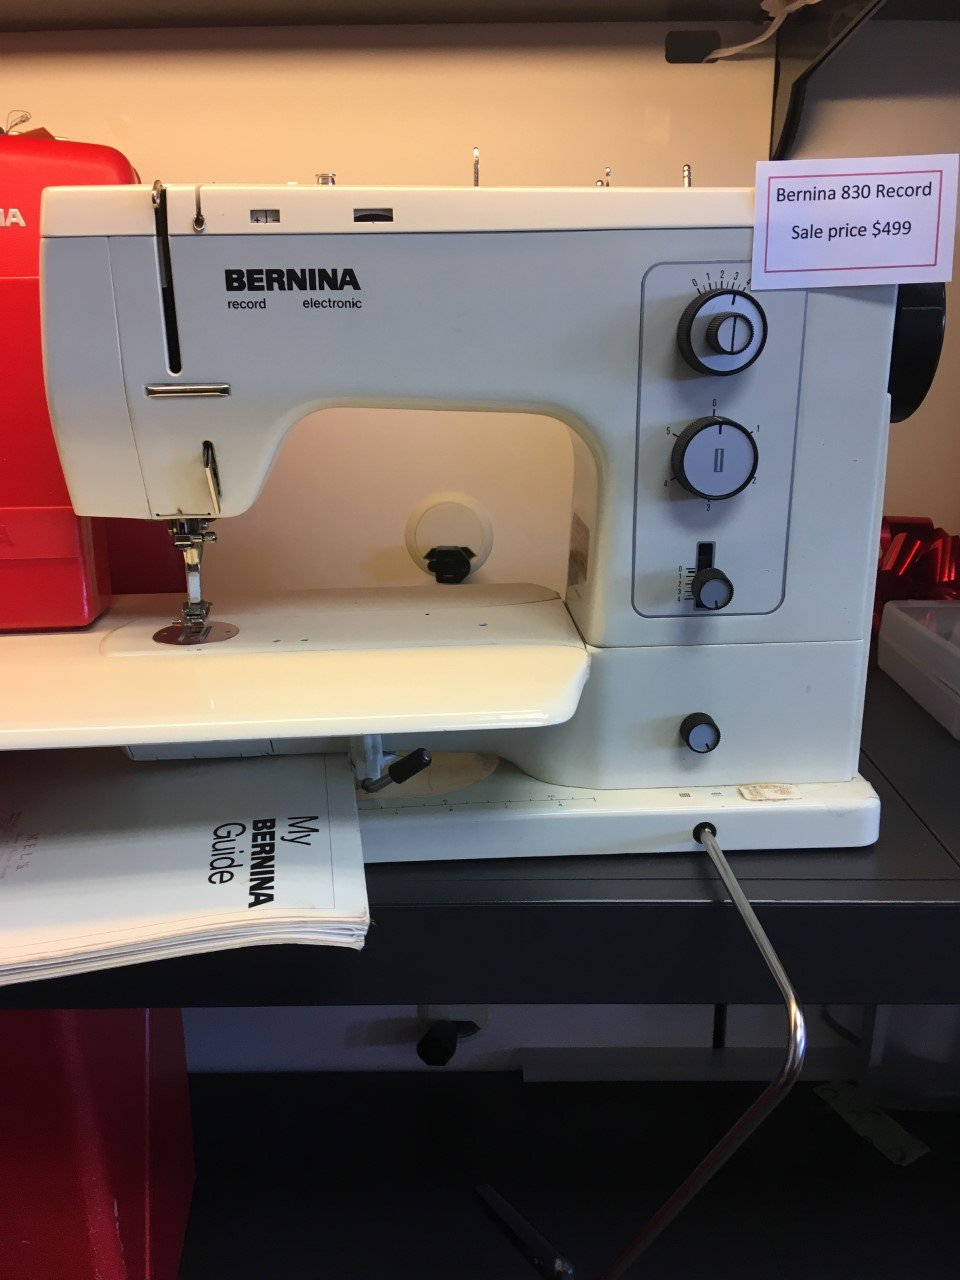 Bernina 830 Record